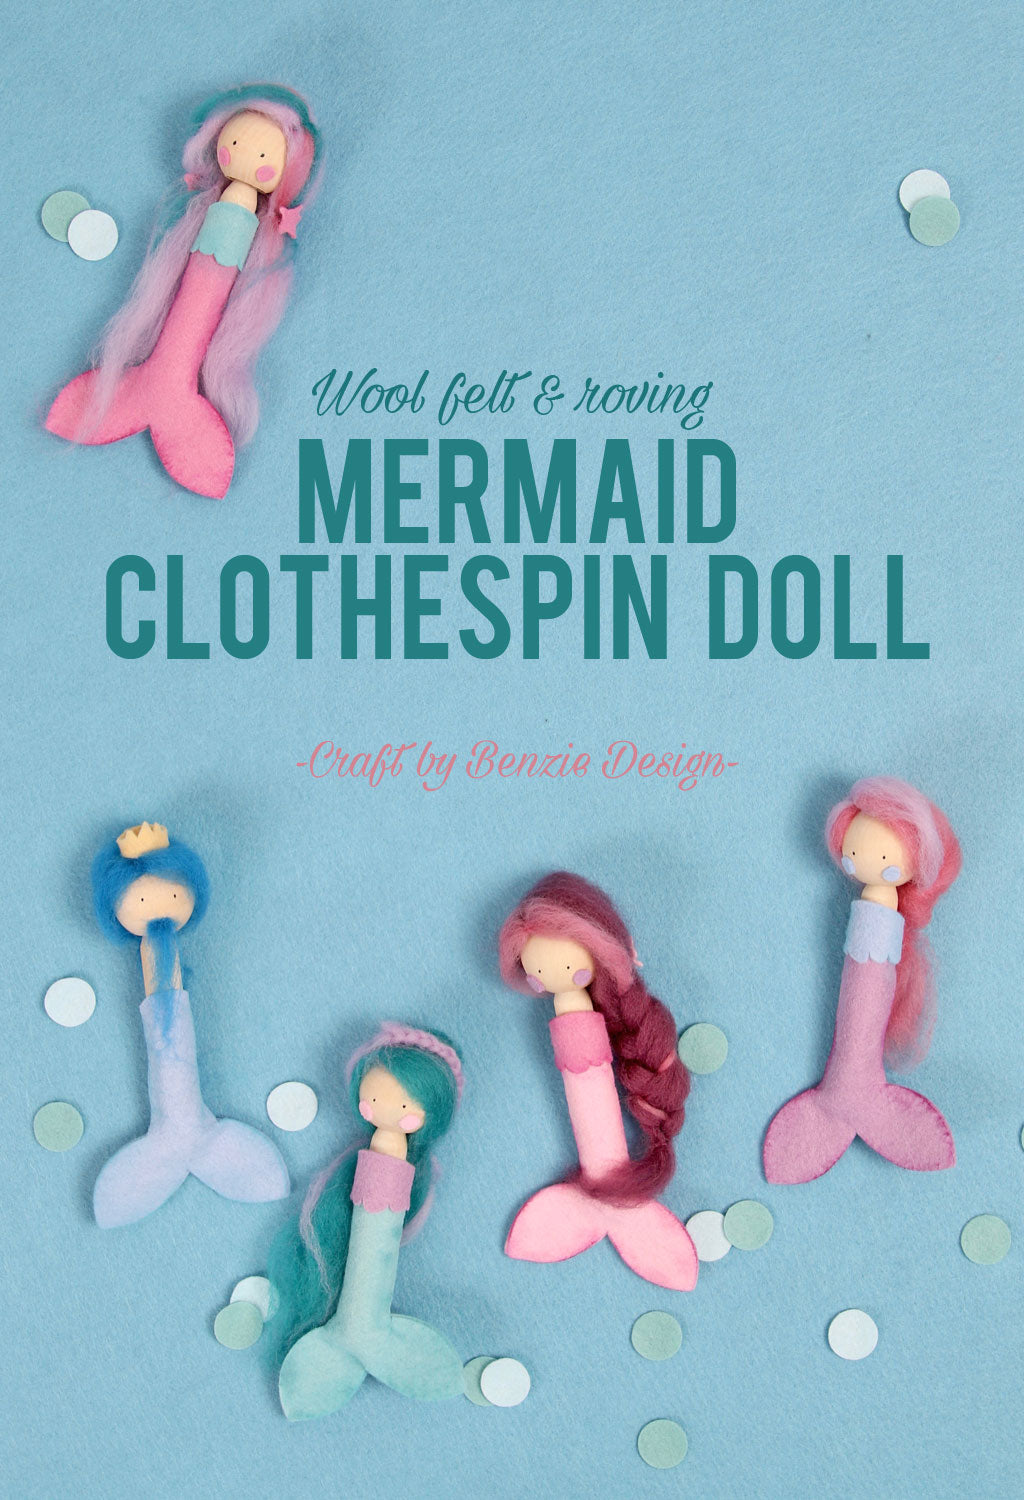 Mermaid clothespin doll